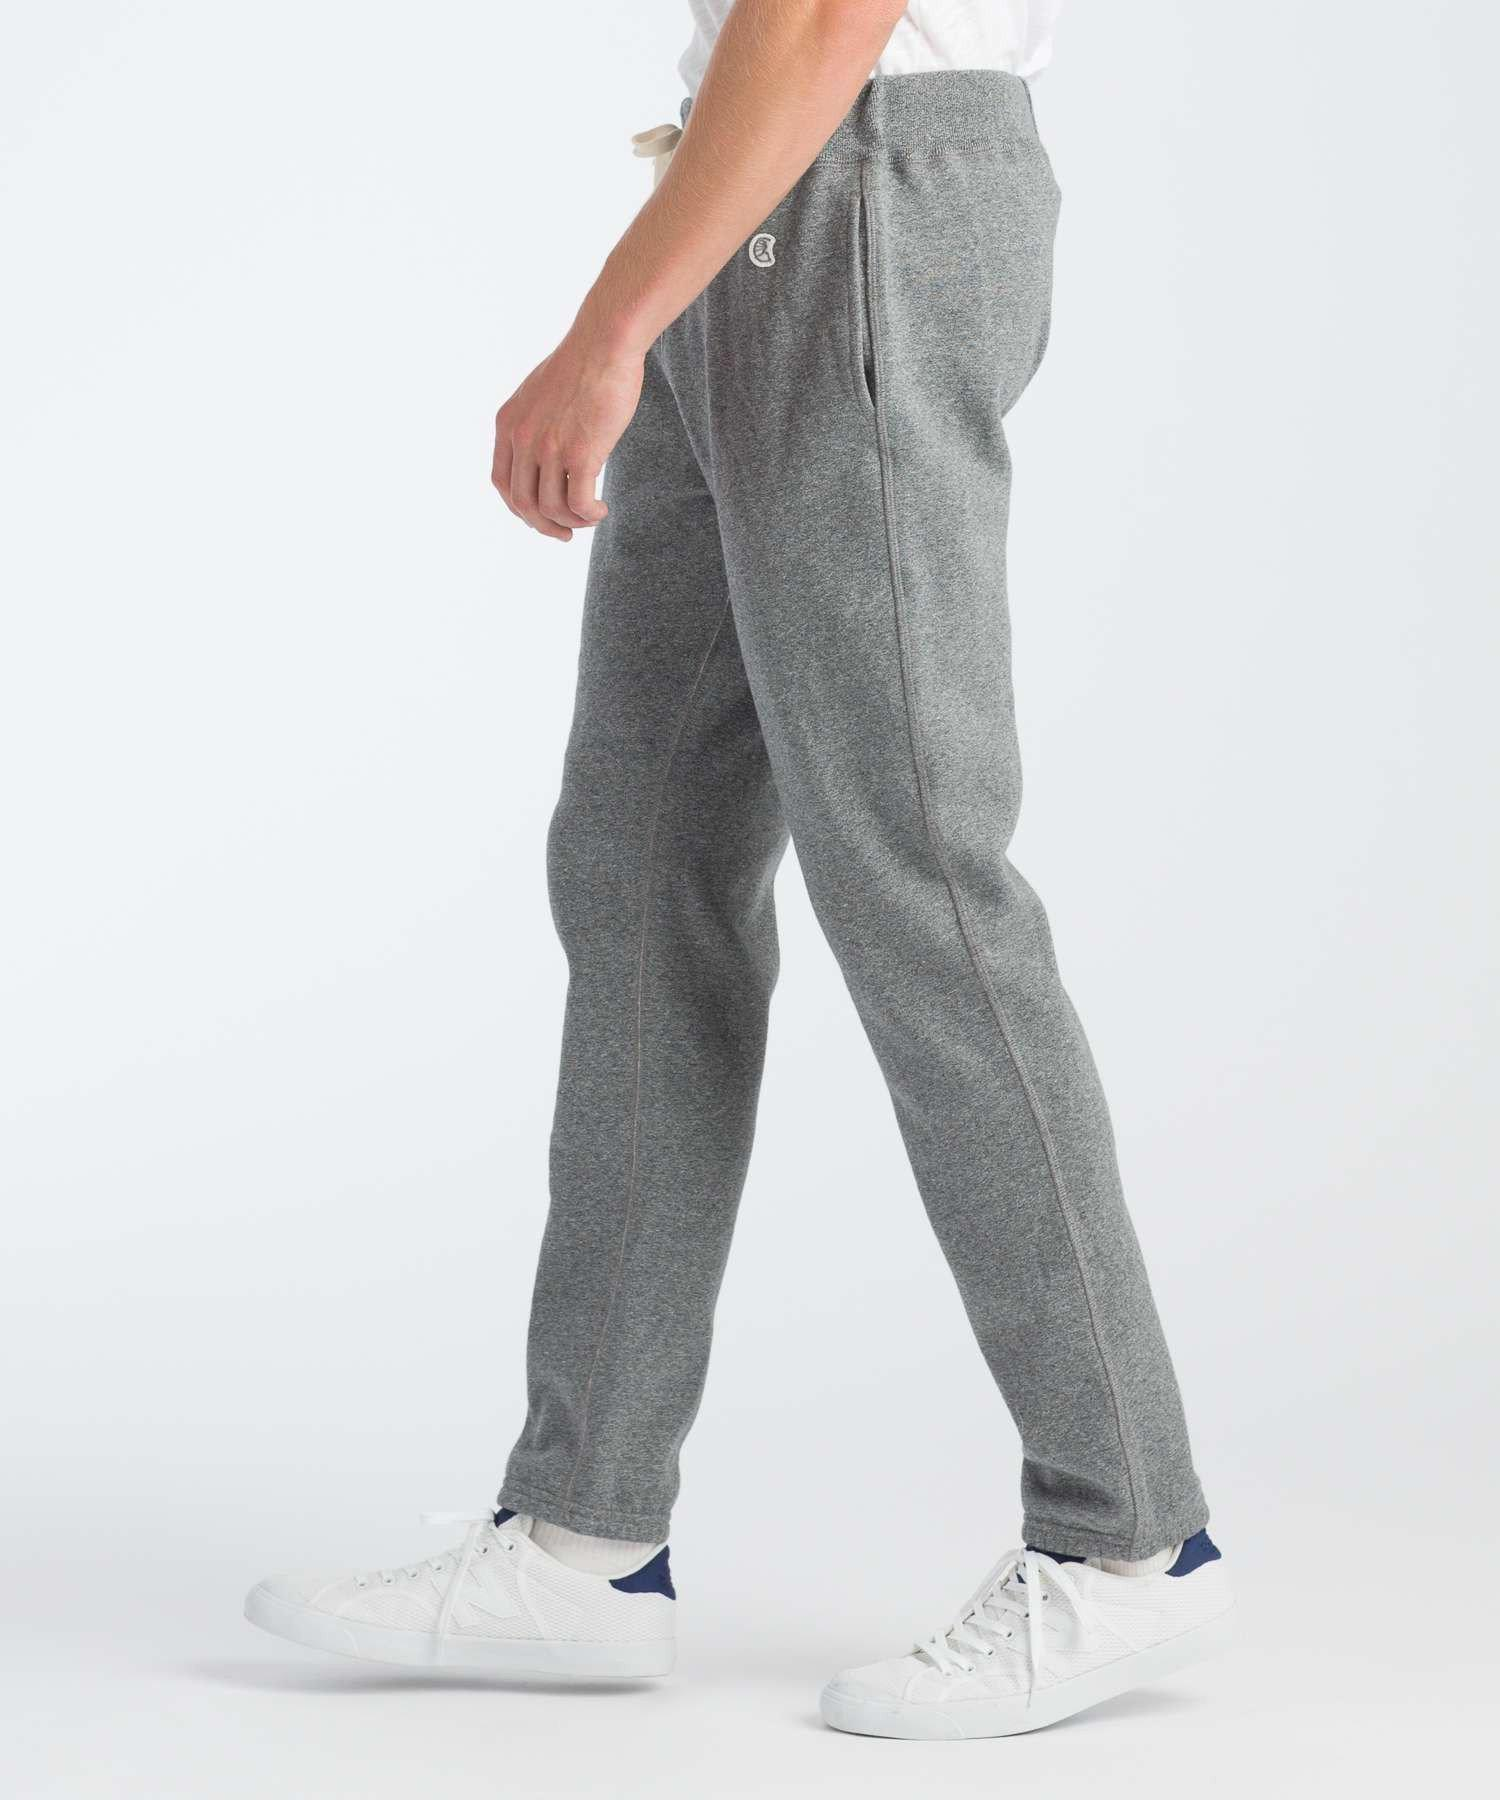 Todd Synder X Champion Cotton Classic Sweatpant In Salt And Pepper in Grey for Men